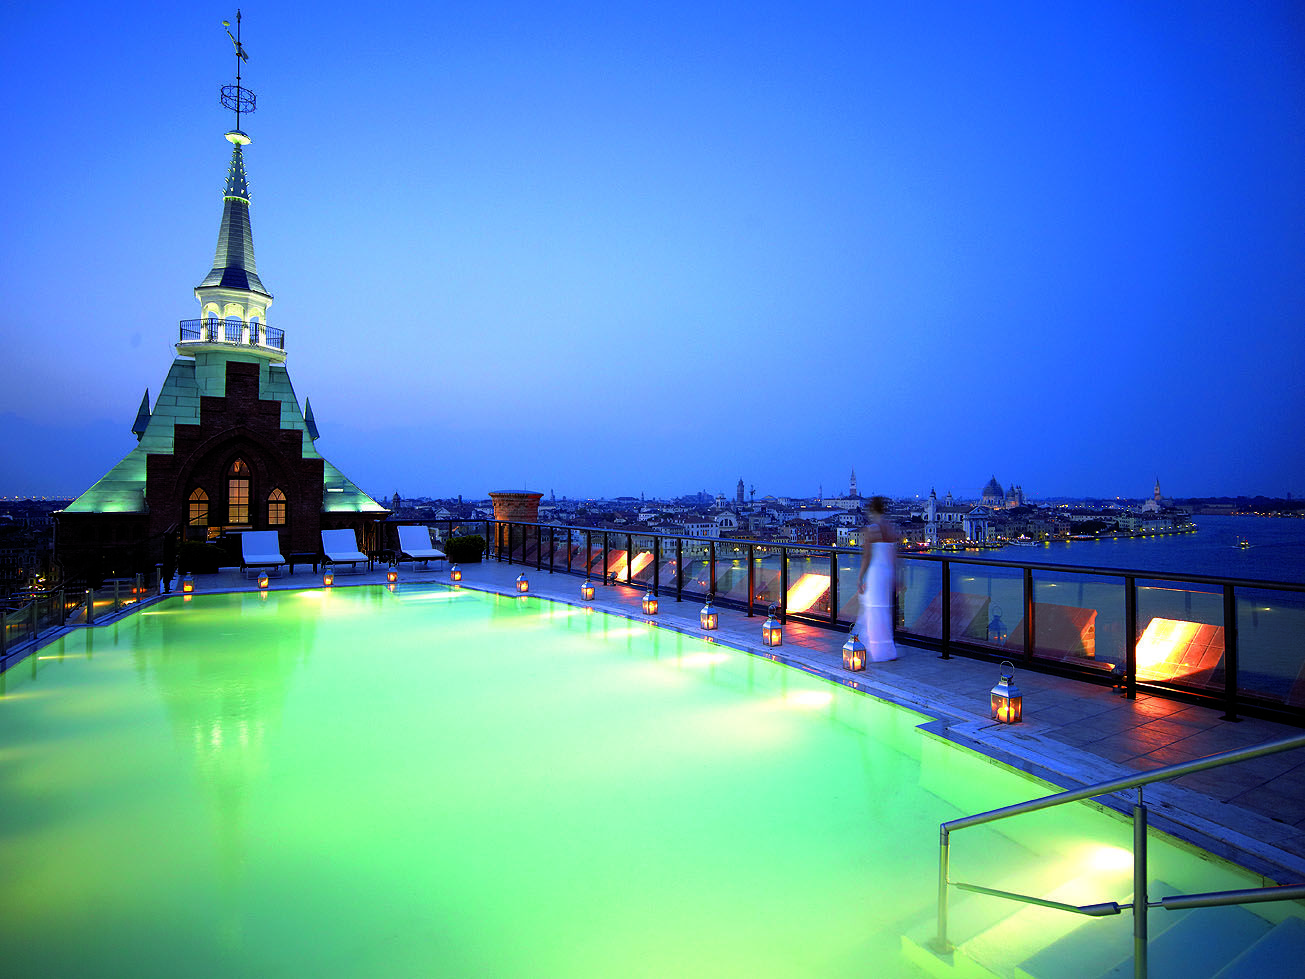 Pool during the night! | Venice hotels, Rooftop pool ...